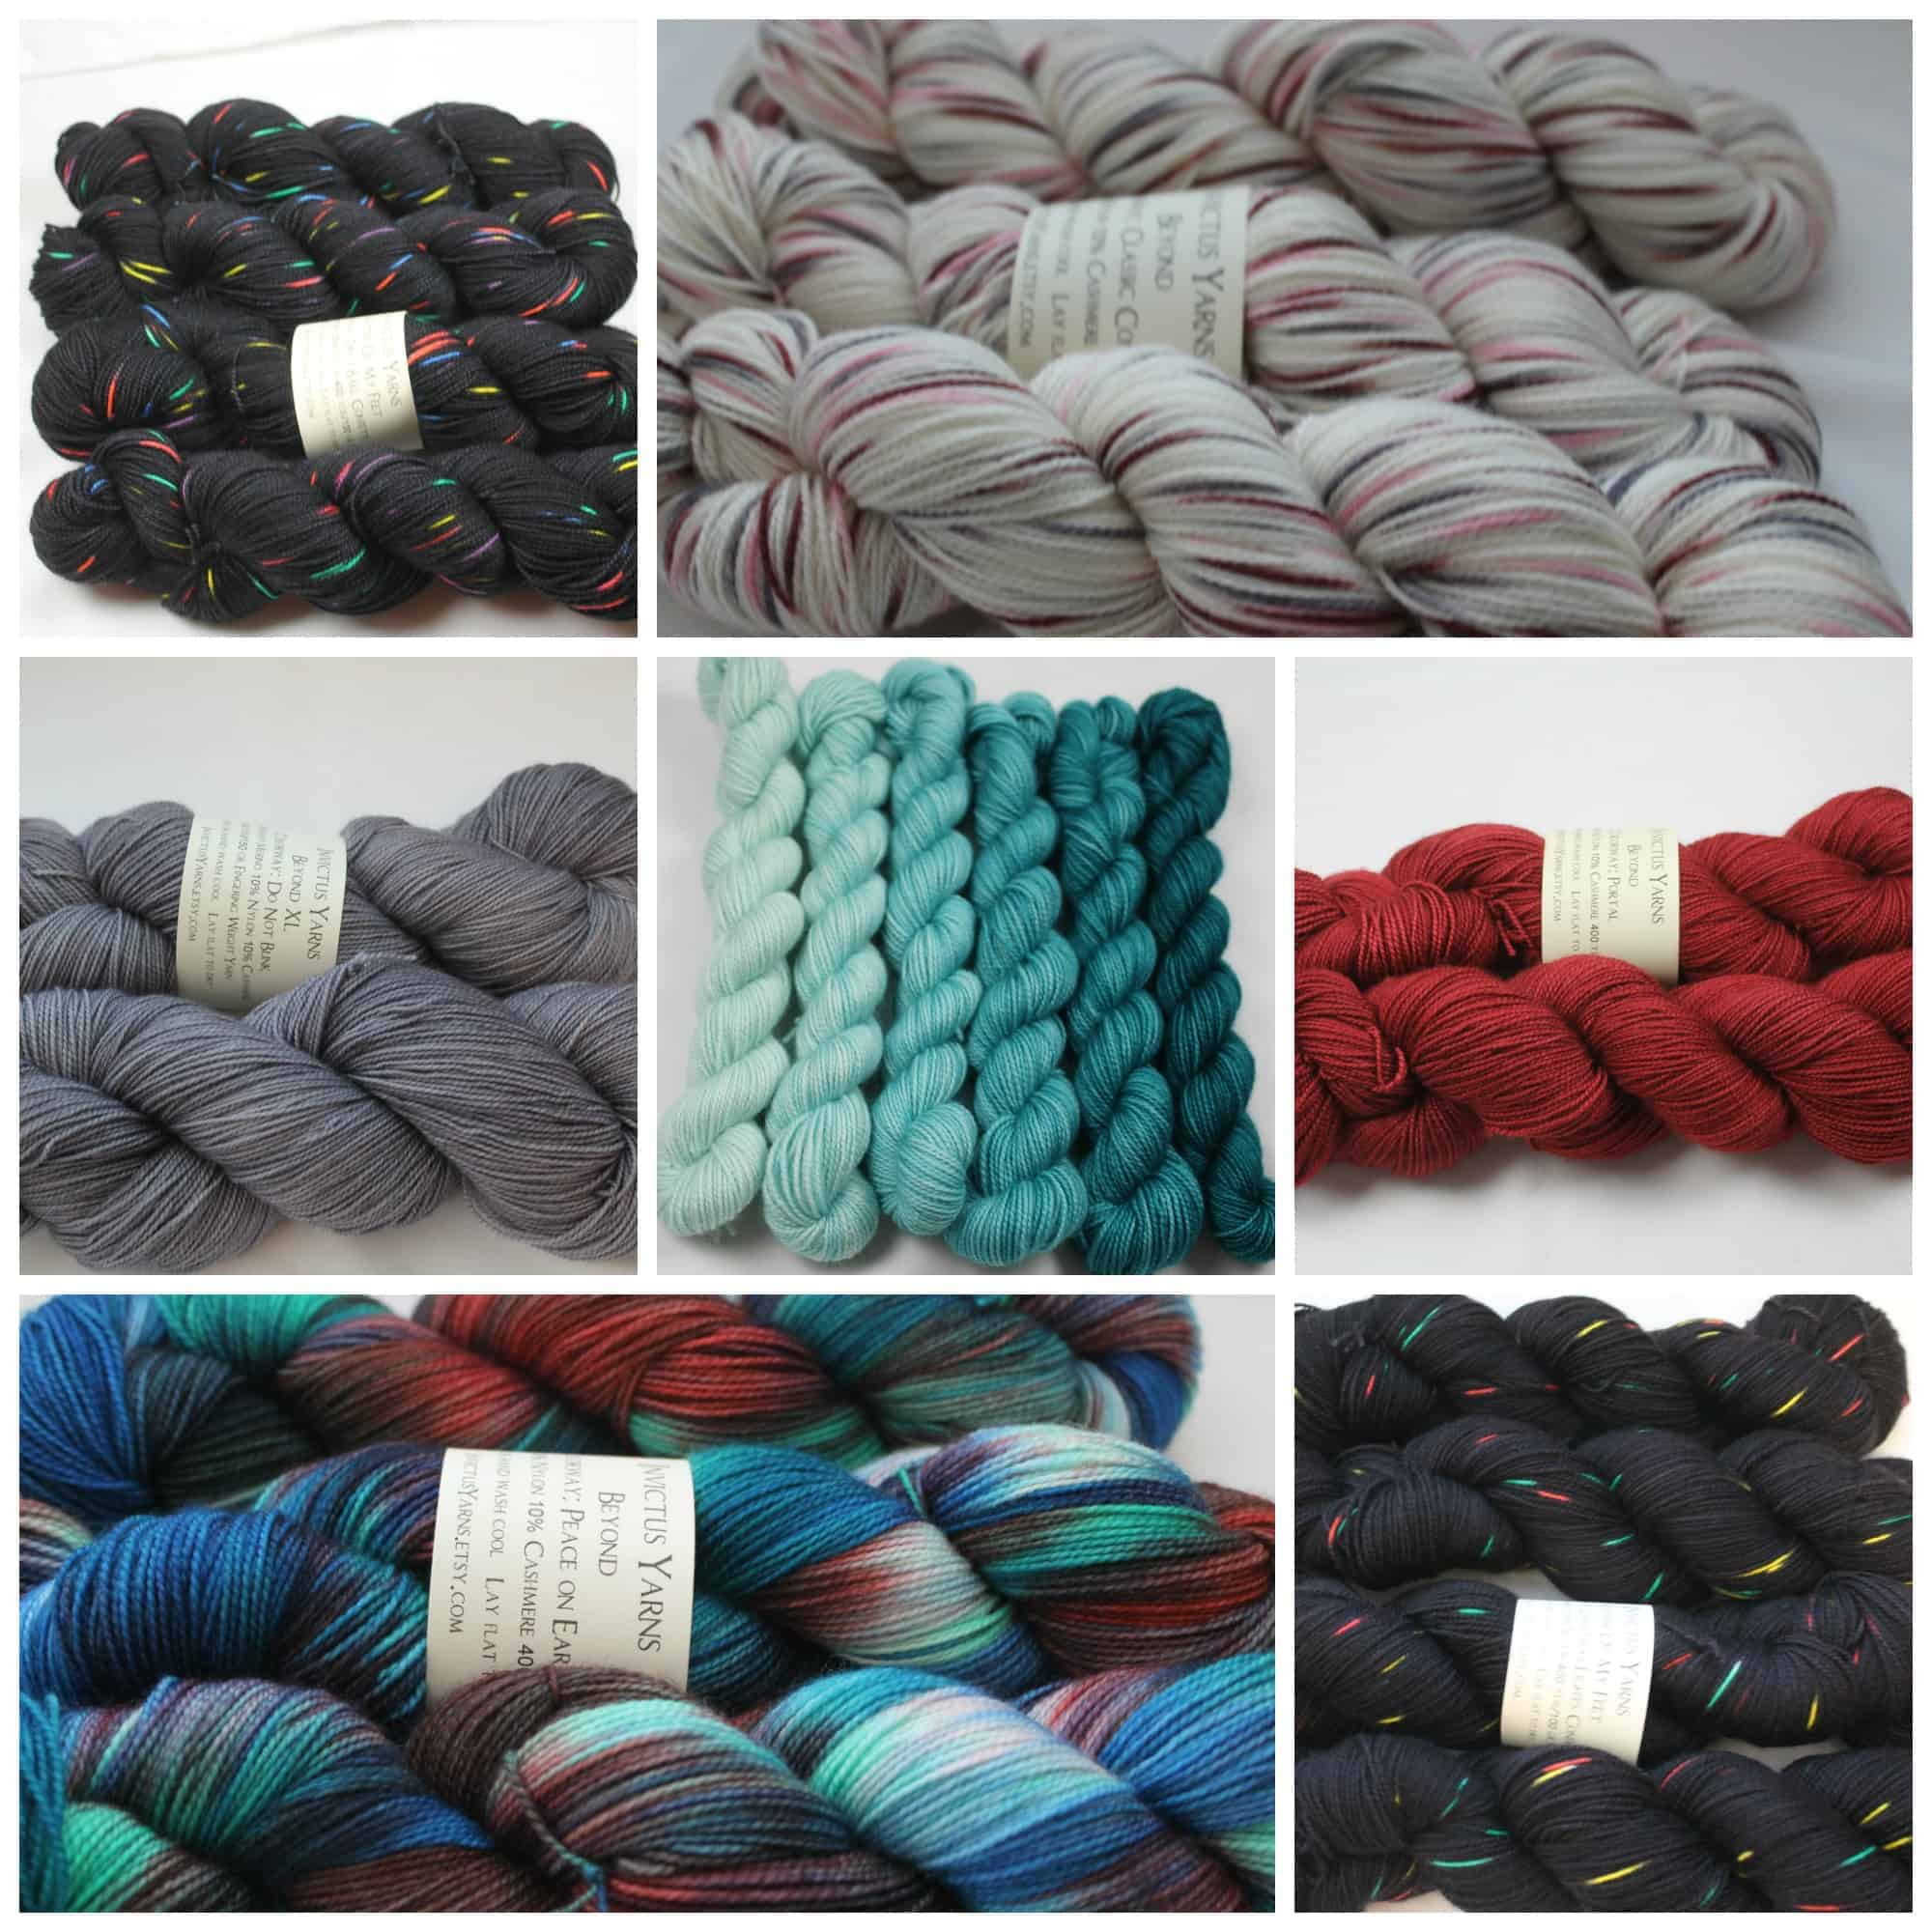 Shopping archives indie untangled everything in the invictus yarns shop including new confetti skeins is 15 off no coupon code needed through tuesday the sale will be valid for fandeluxe Choice Image